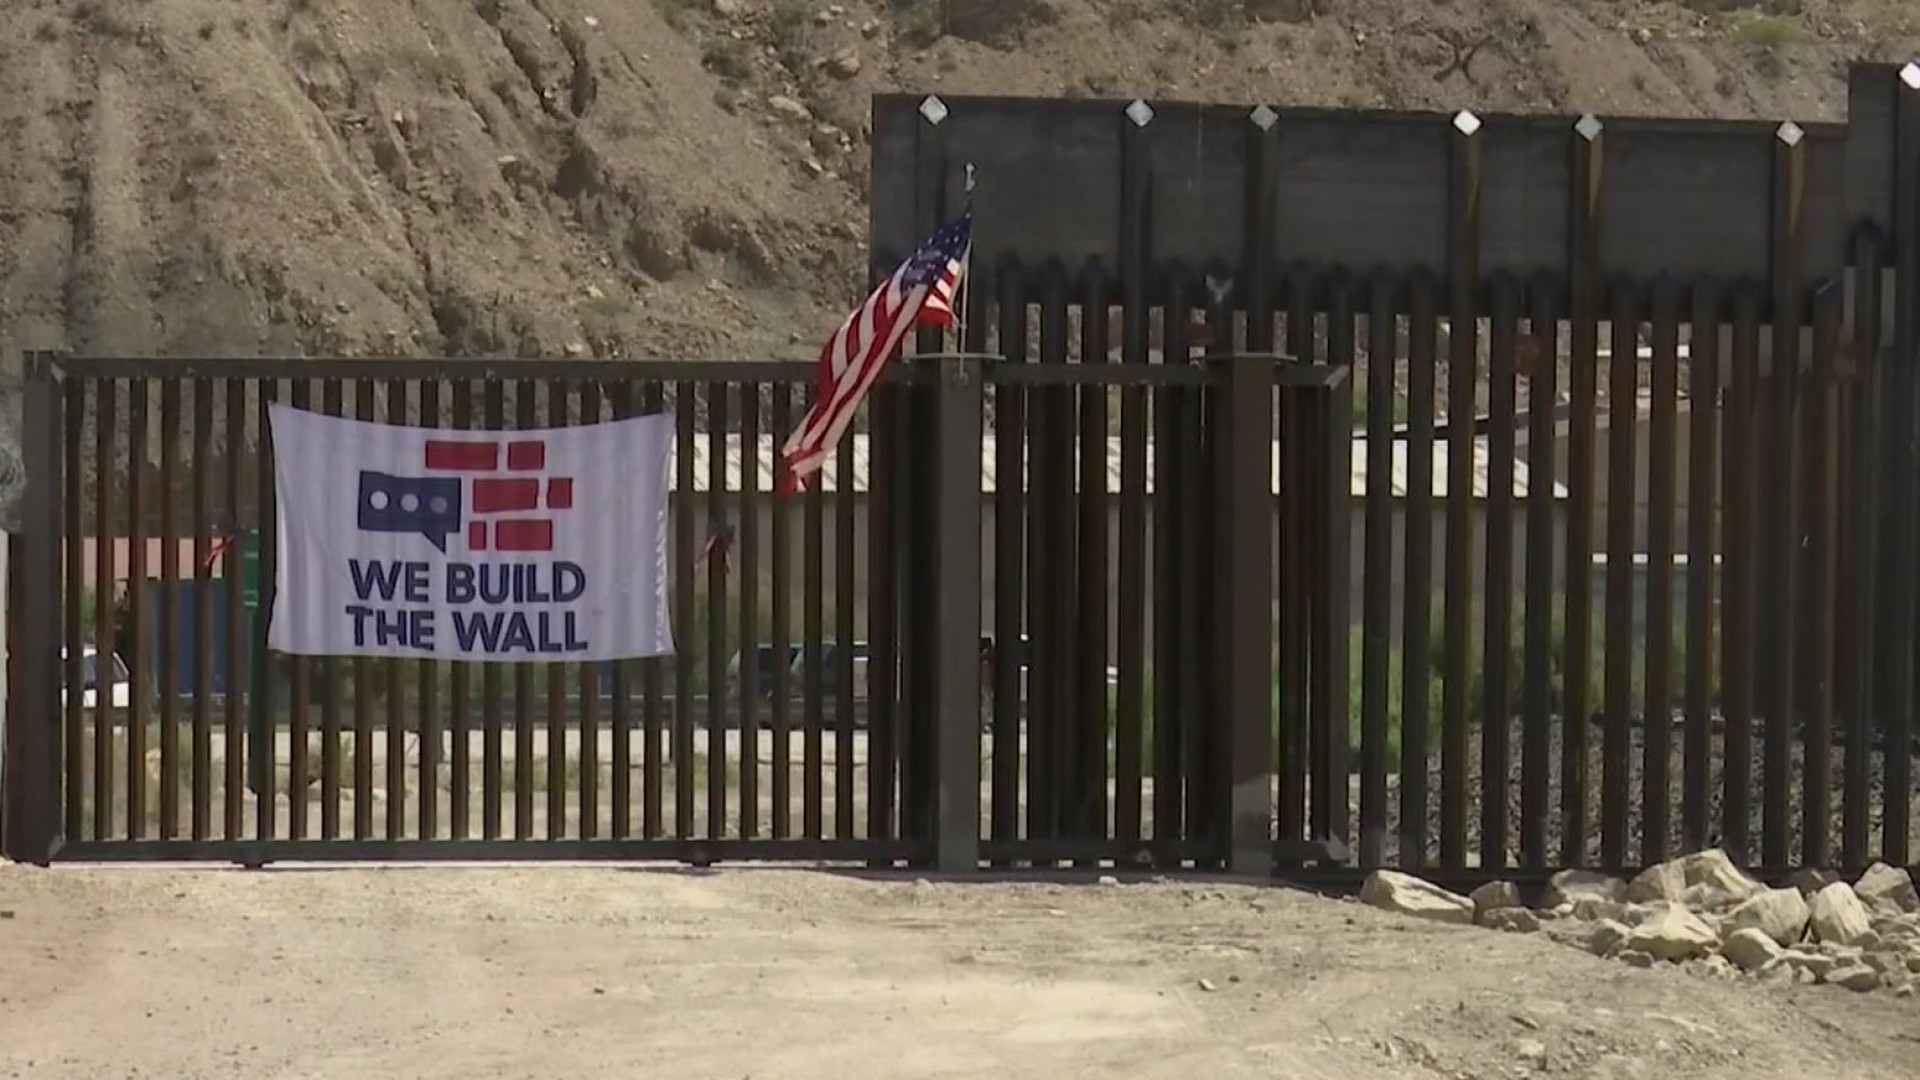 New border gate built on border barrier stirs up controversy over blocking access to Monument One